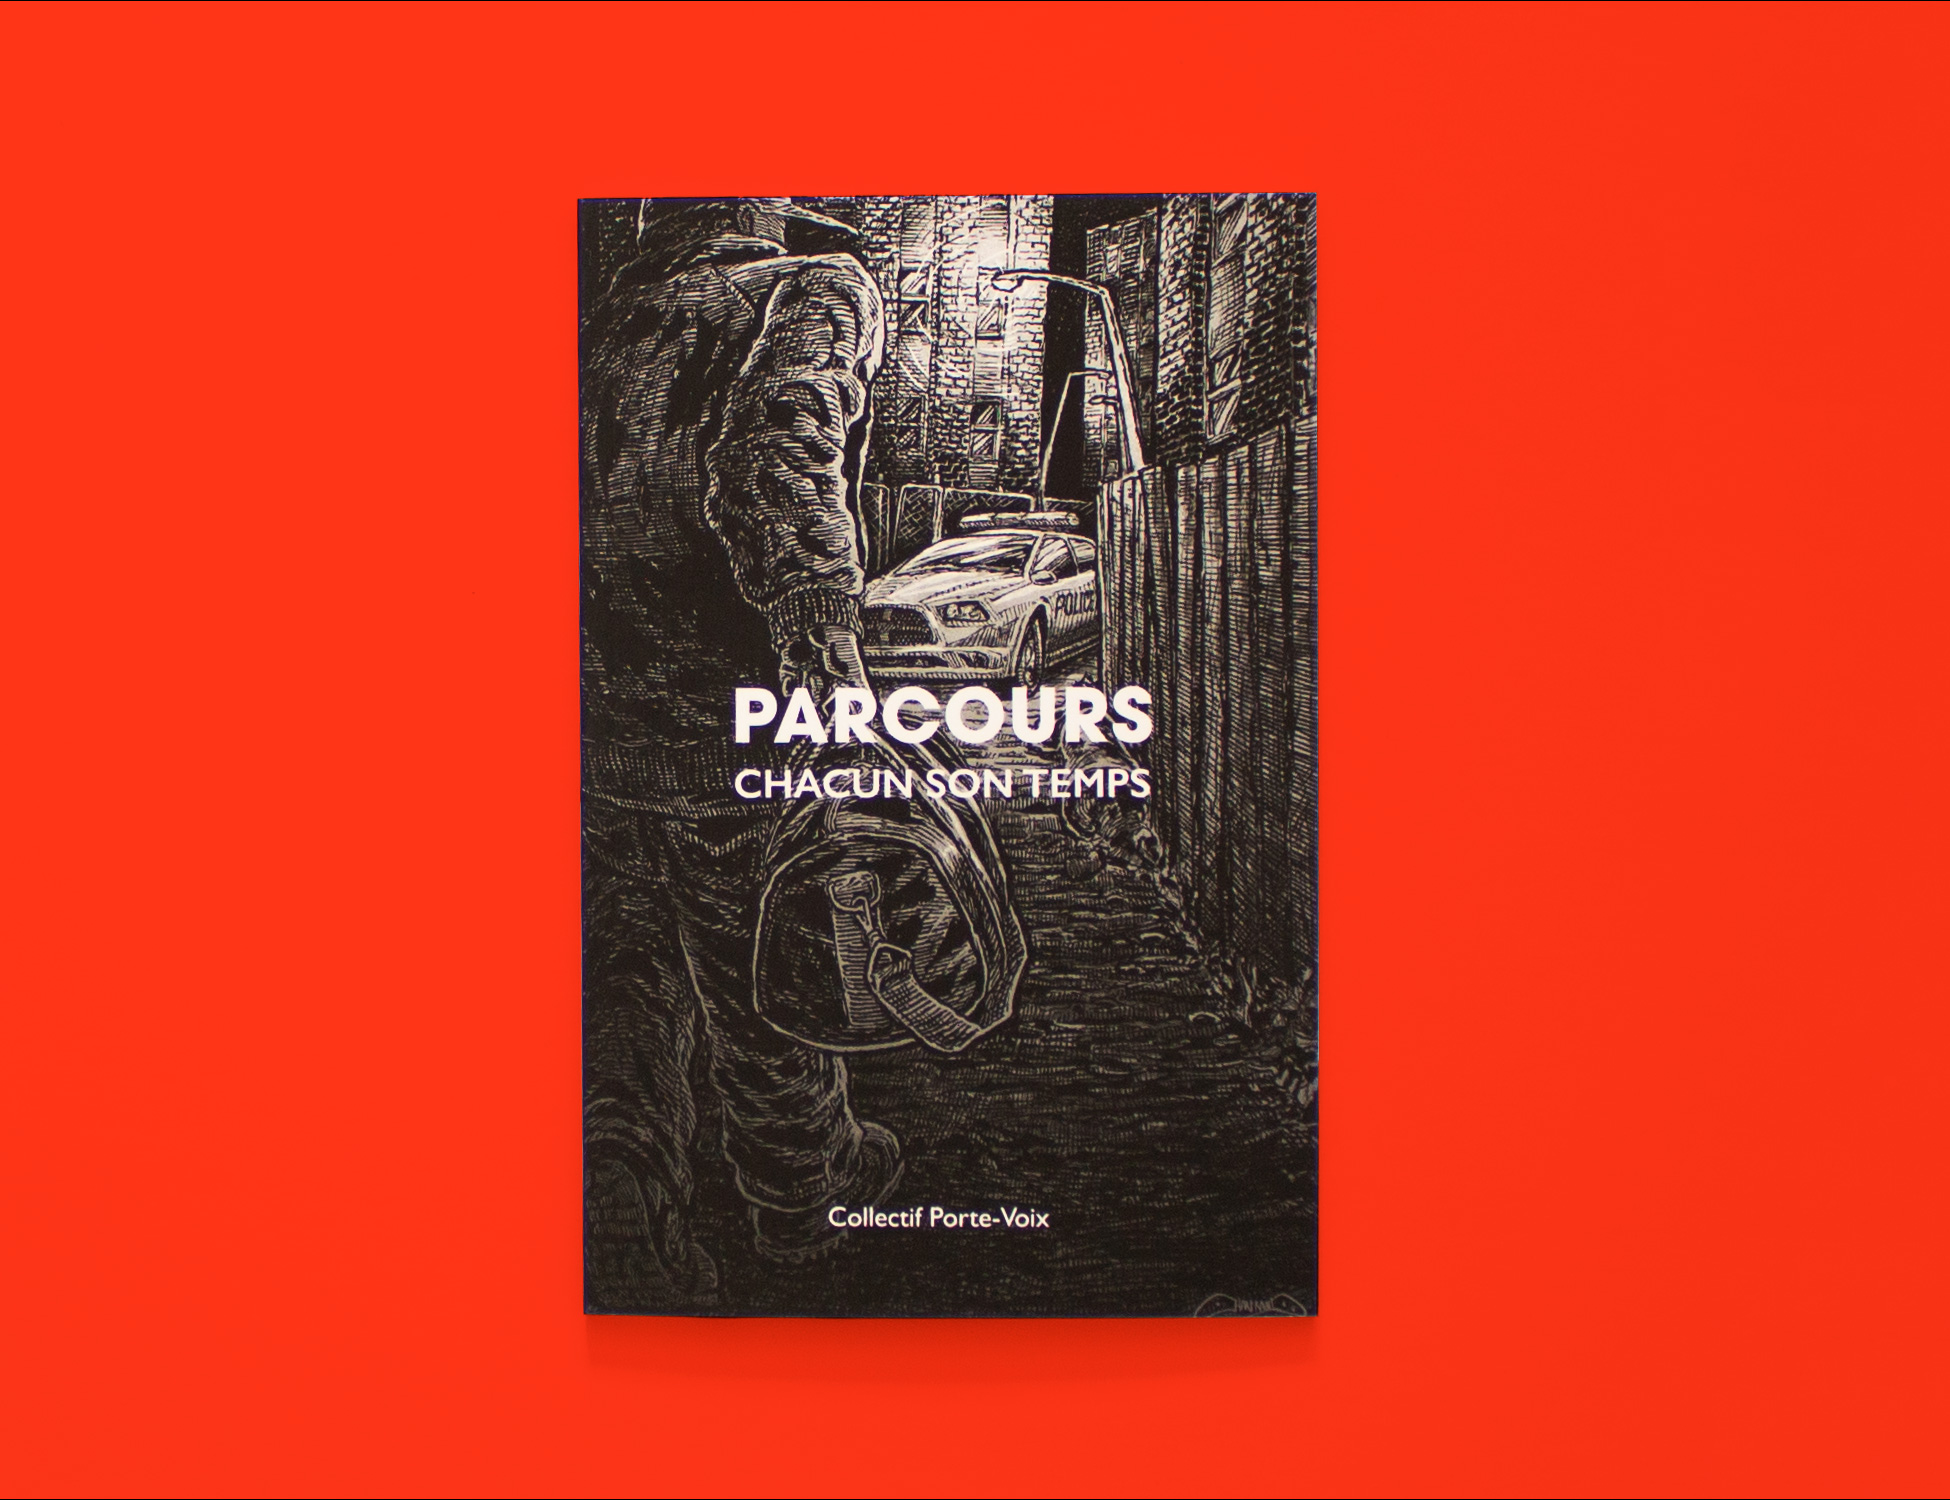 Cover of Parcous: Chacun son temps. It is an ink illustration of a young person being taken into detention. We see the young person carrying a bag and heading towards a police car.